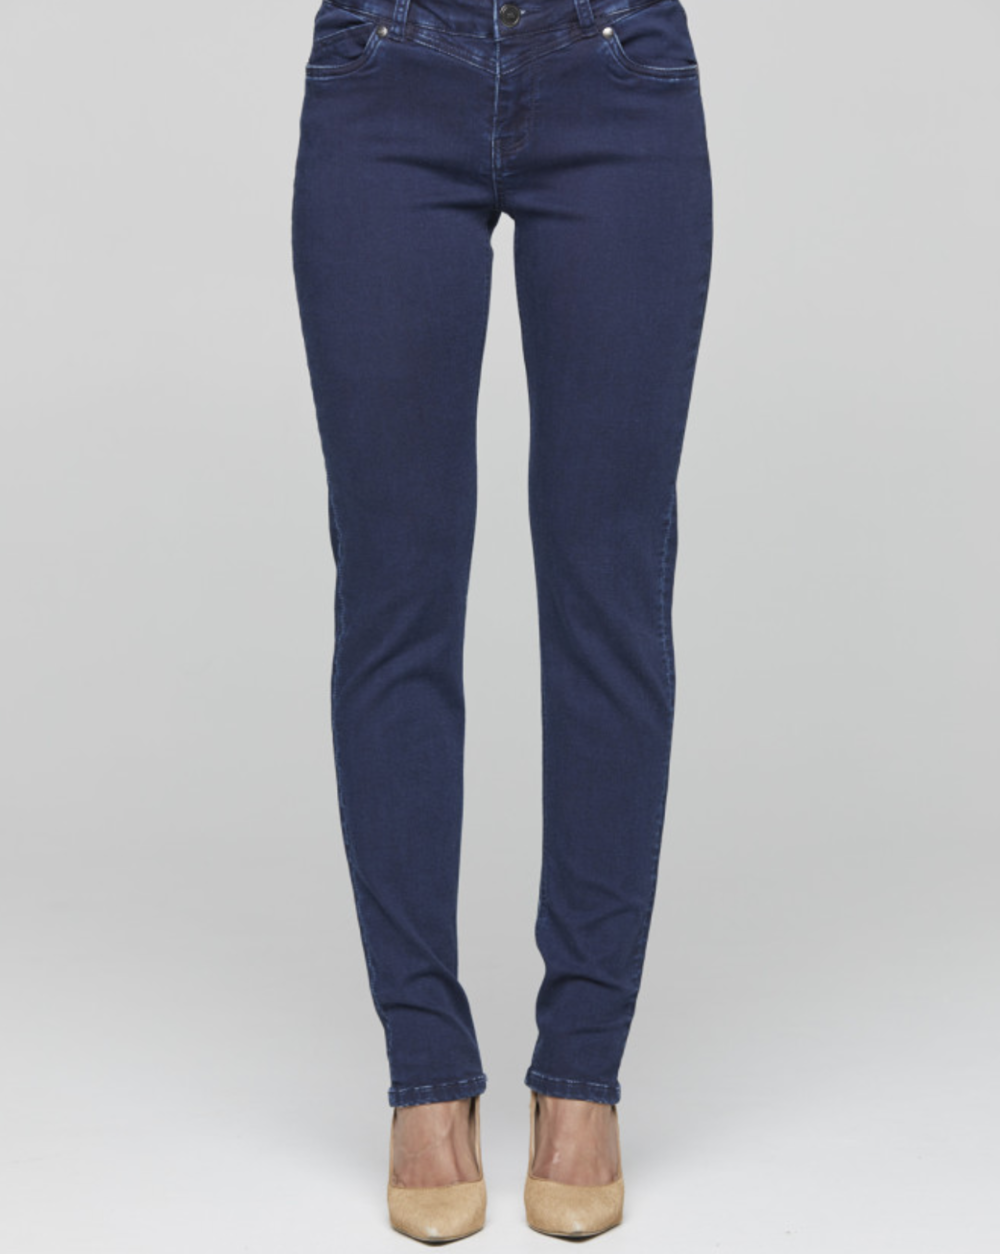 New London Jeans